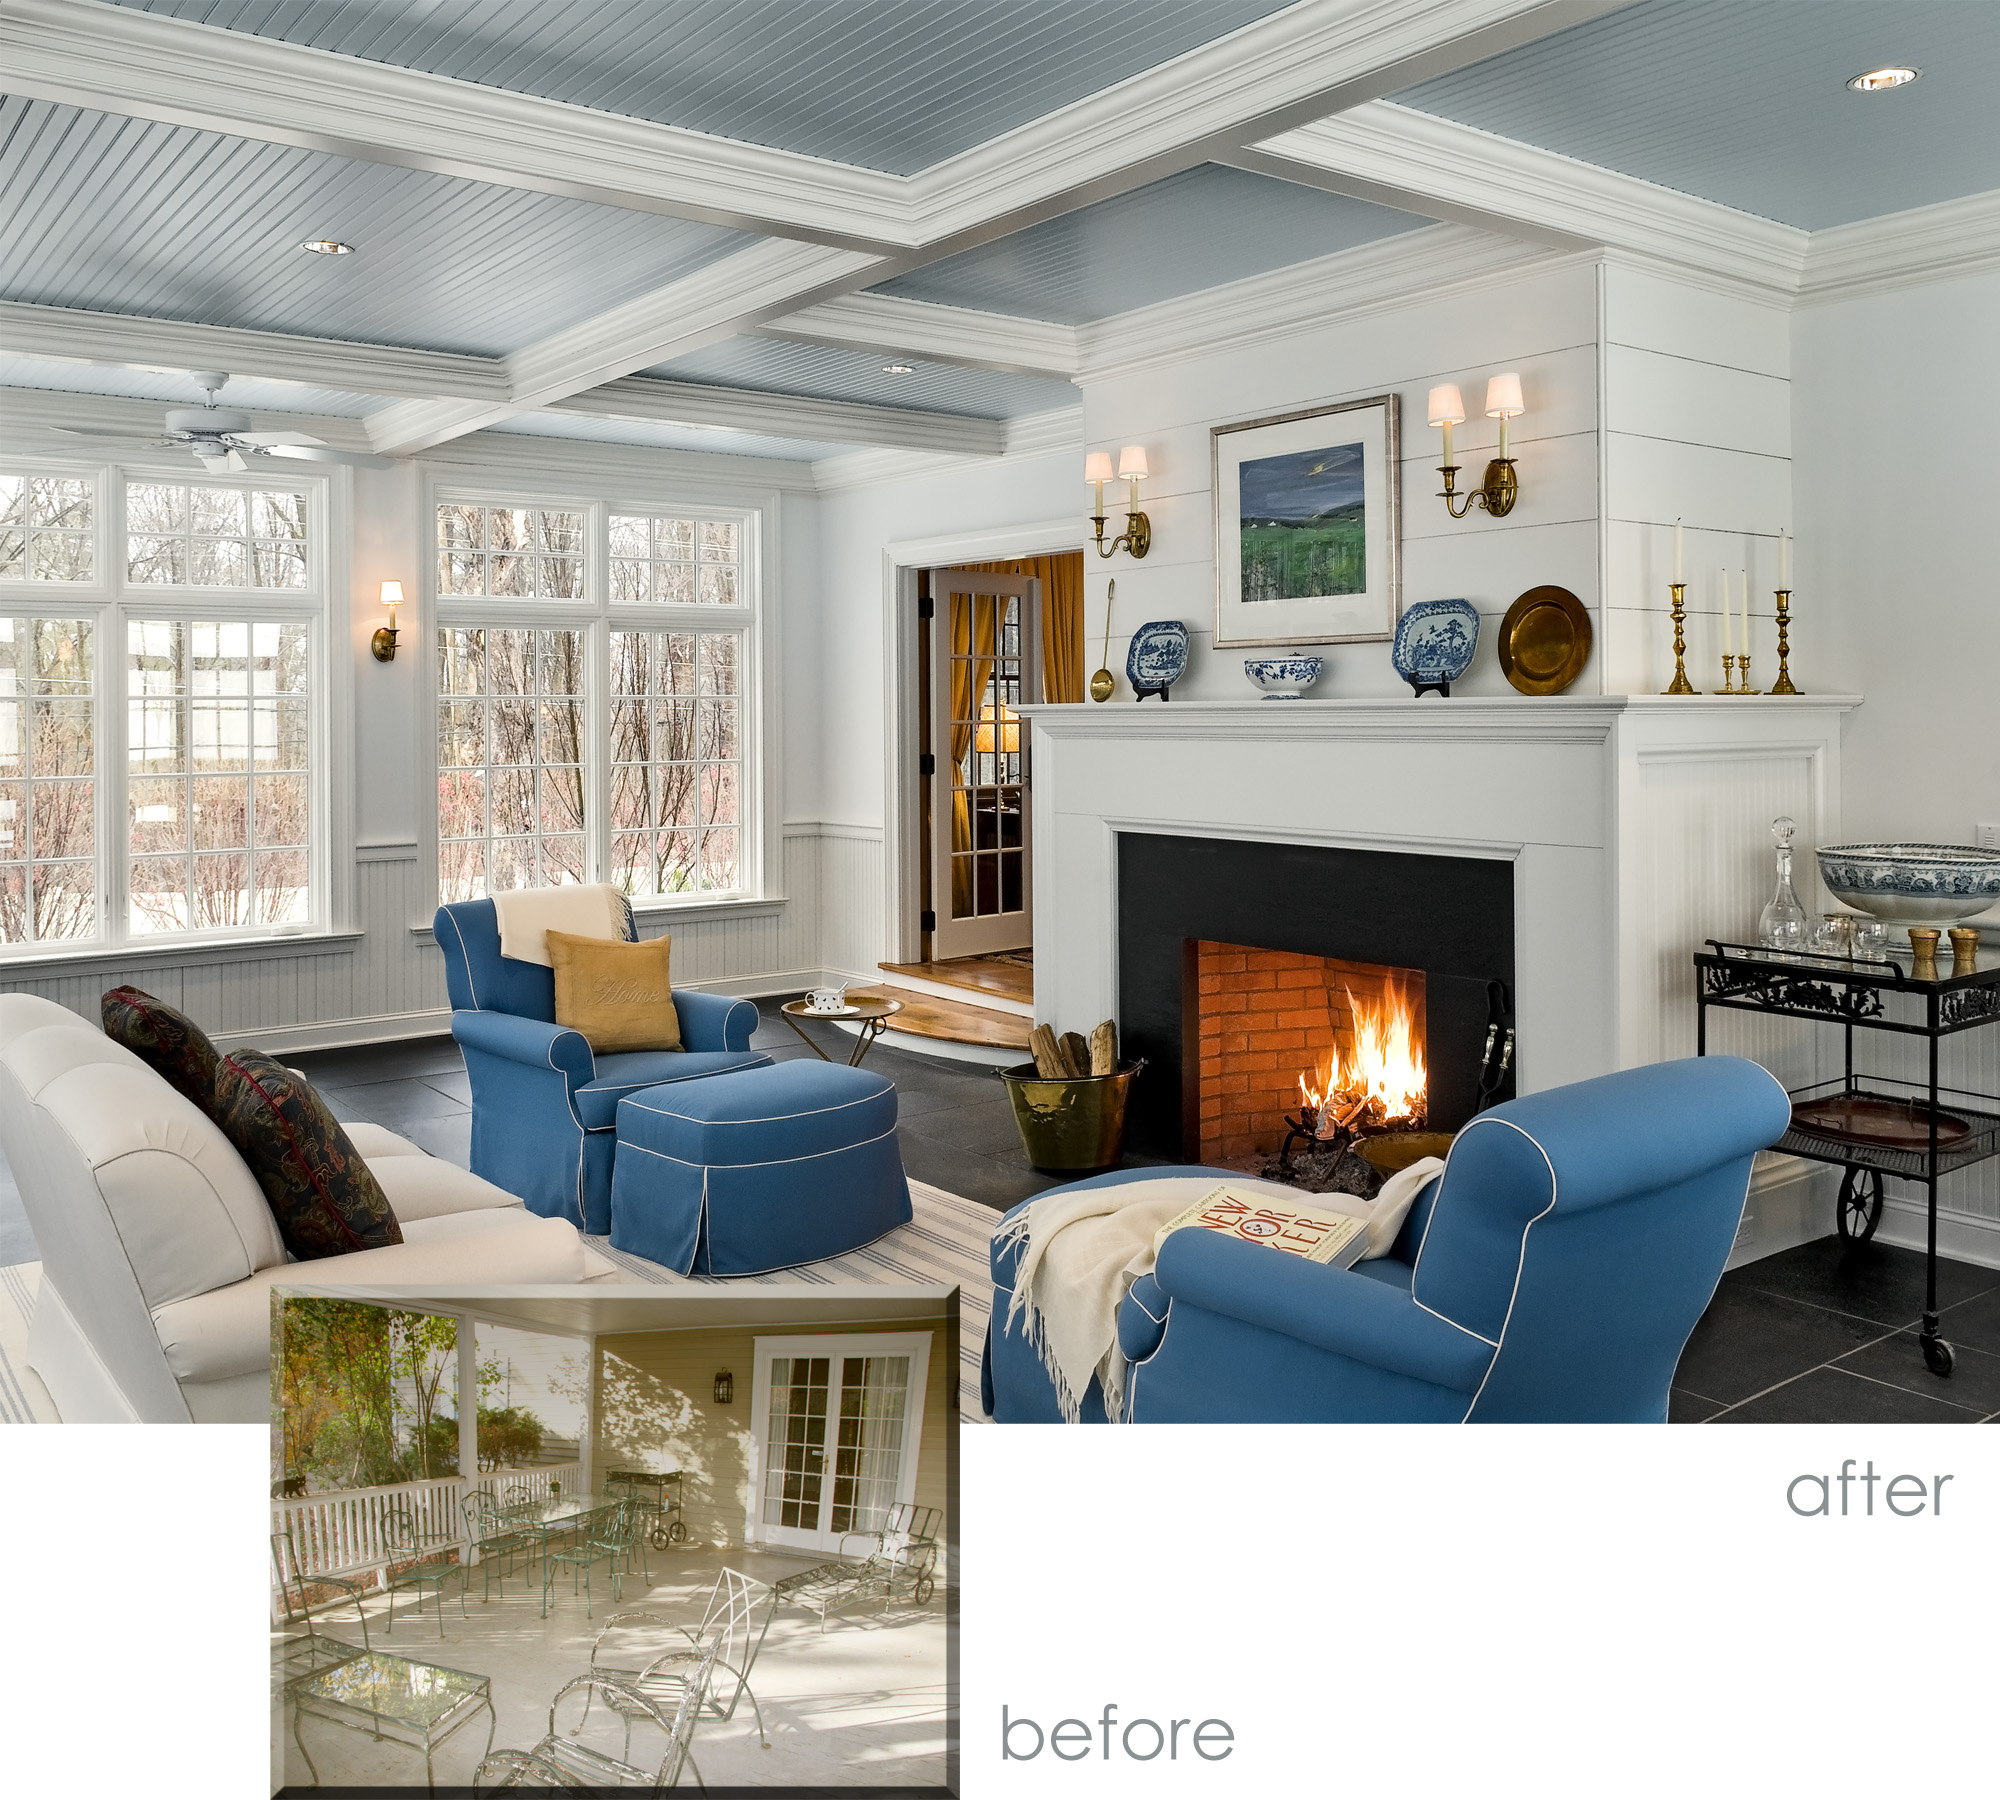 Sun Room Before and After With Fireplace